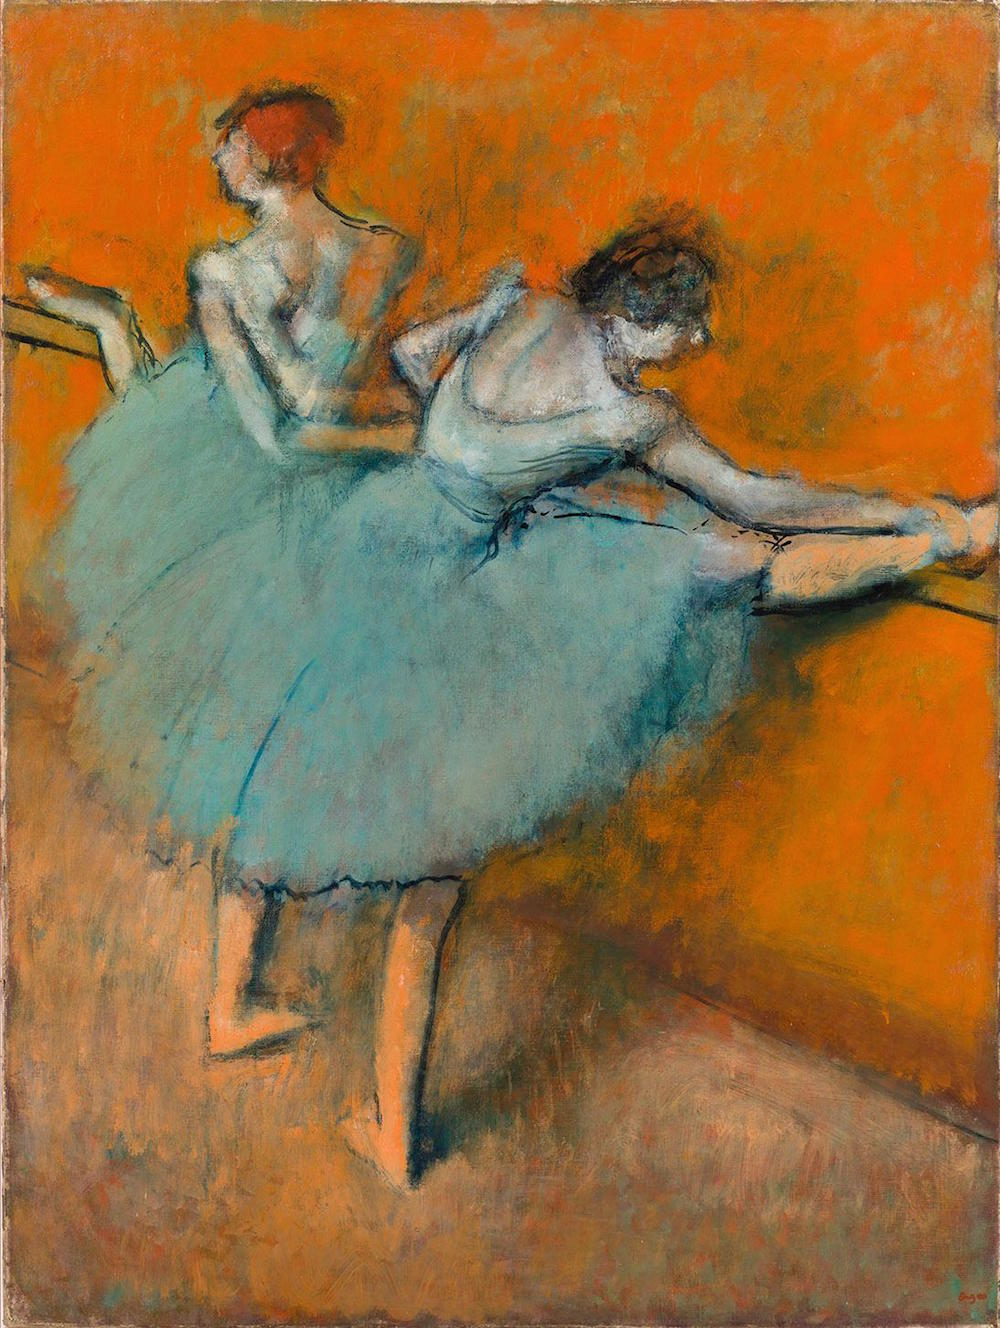 Pinturas De Bailarinas La Phillips Collection Luce Sus Grandes Pinturas En Madrid El